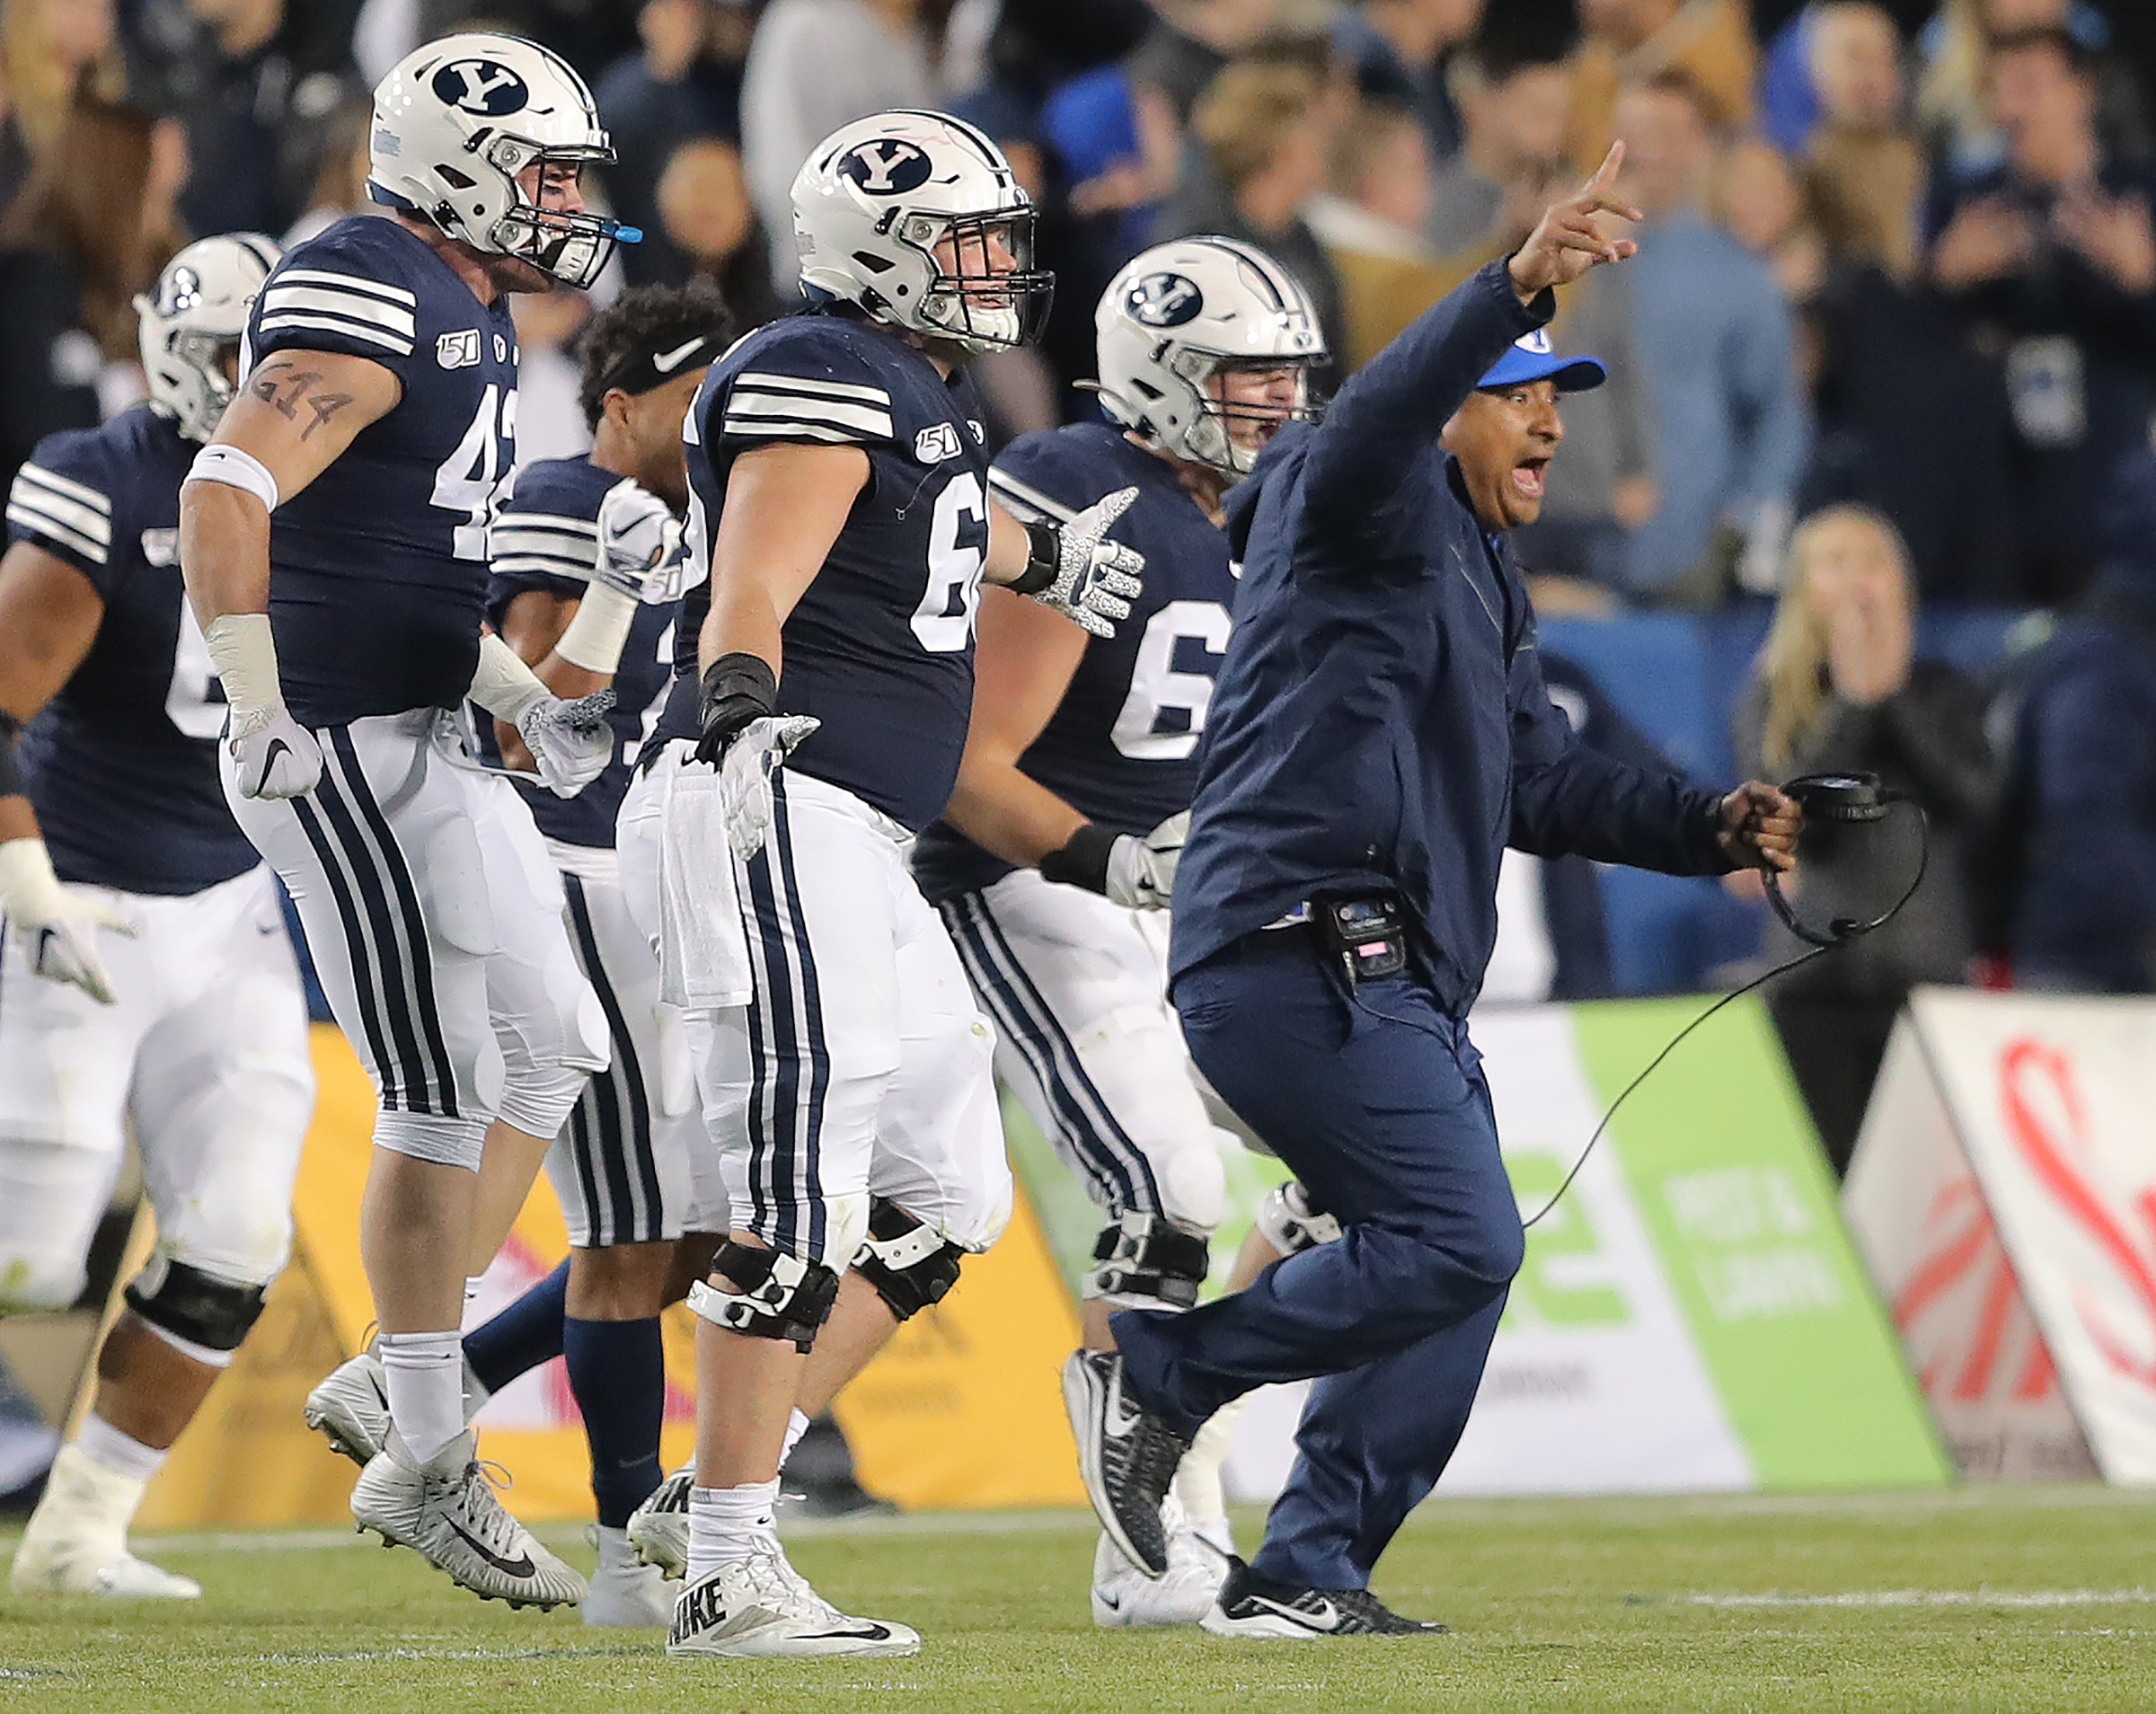 Brigham Young Cougars head coach Kalani Sitake leads his players out onto the field as BYU defeats Liberty in an NCAA football game in Provo, Utah on Saturday, Nov. 9, 2019. BYU won 31-24.